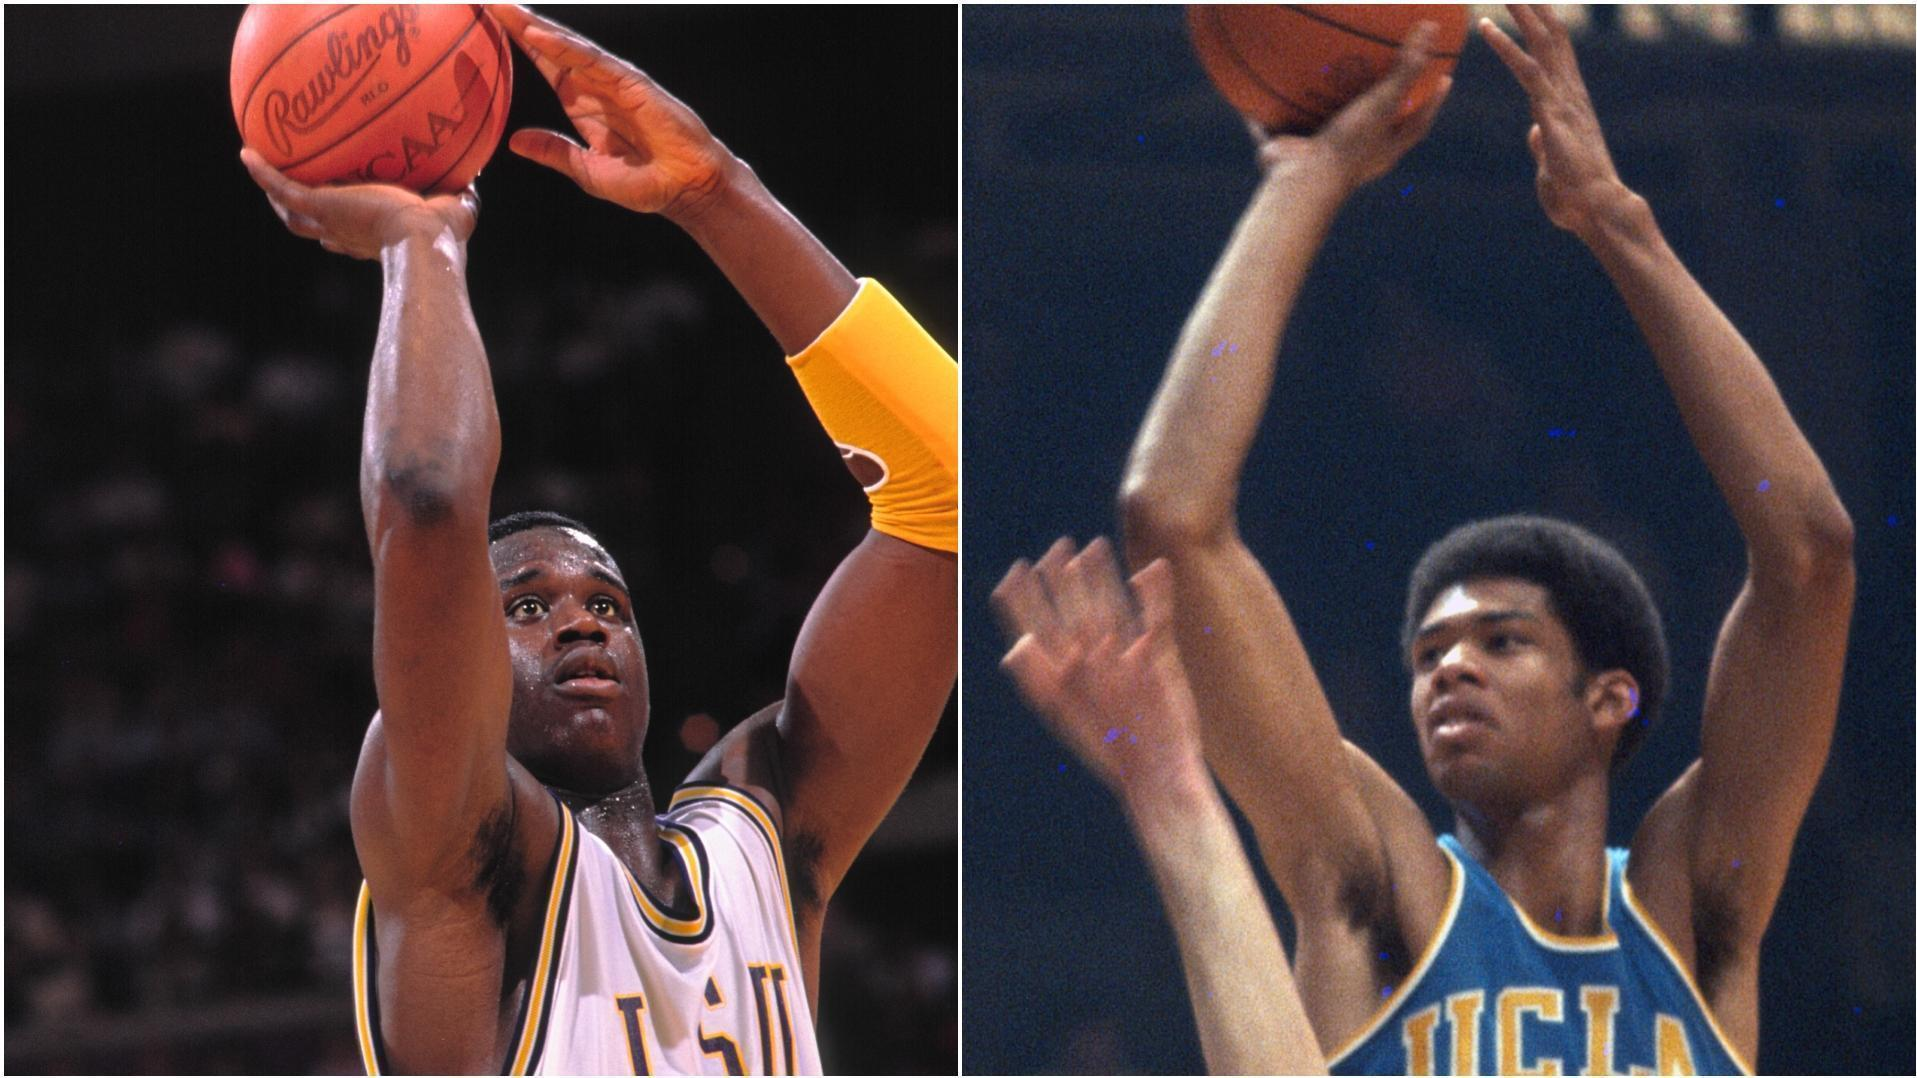 Does Shaq stand a chance vs. Kareem in bracket matchup?